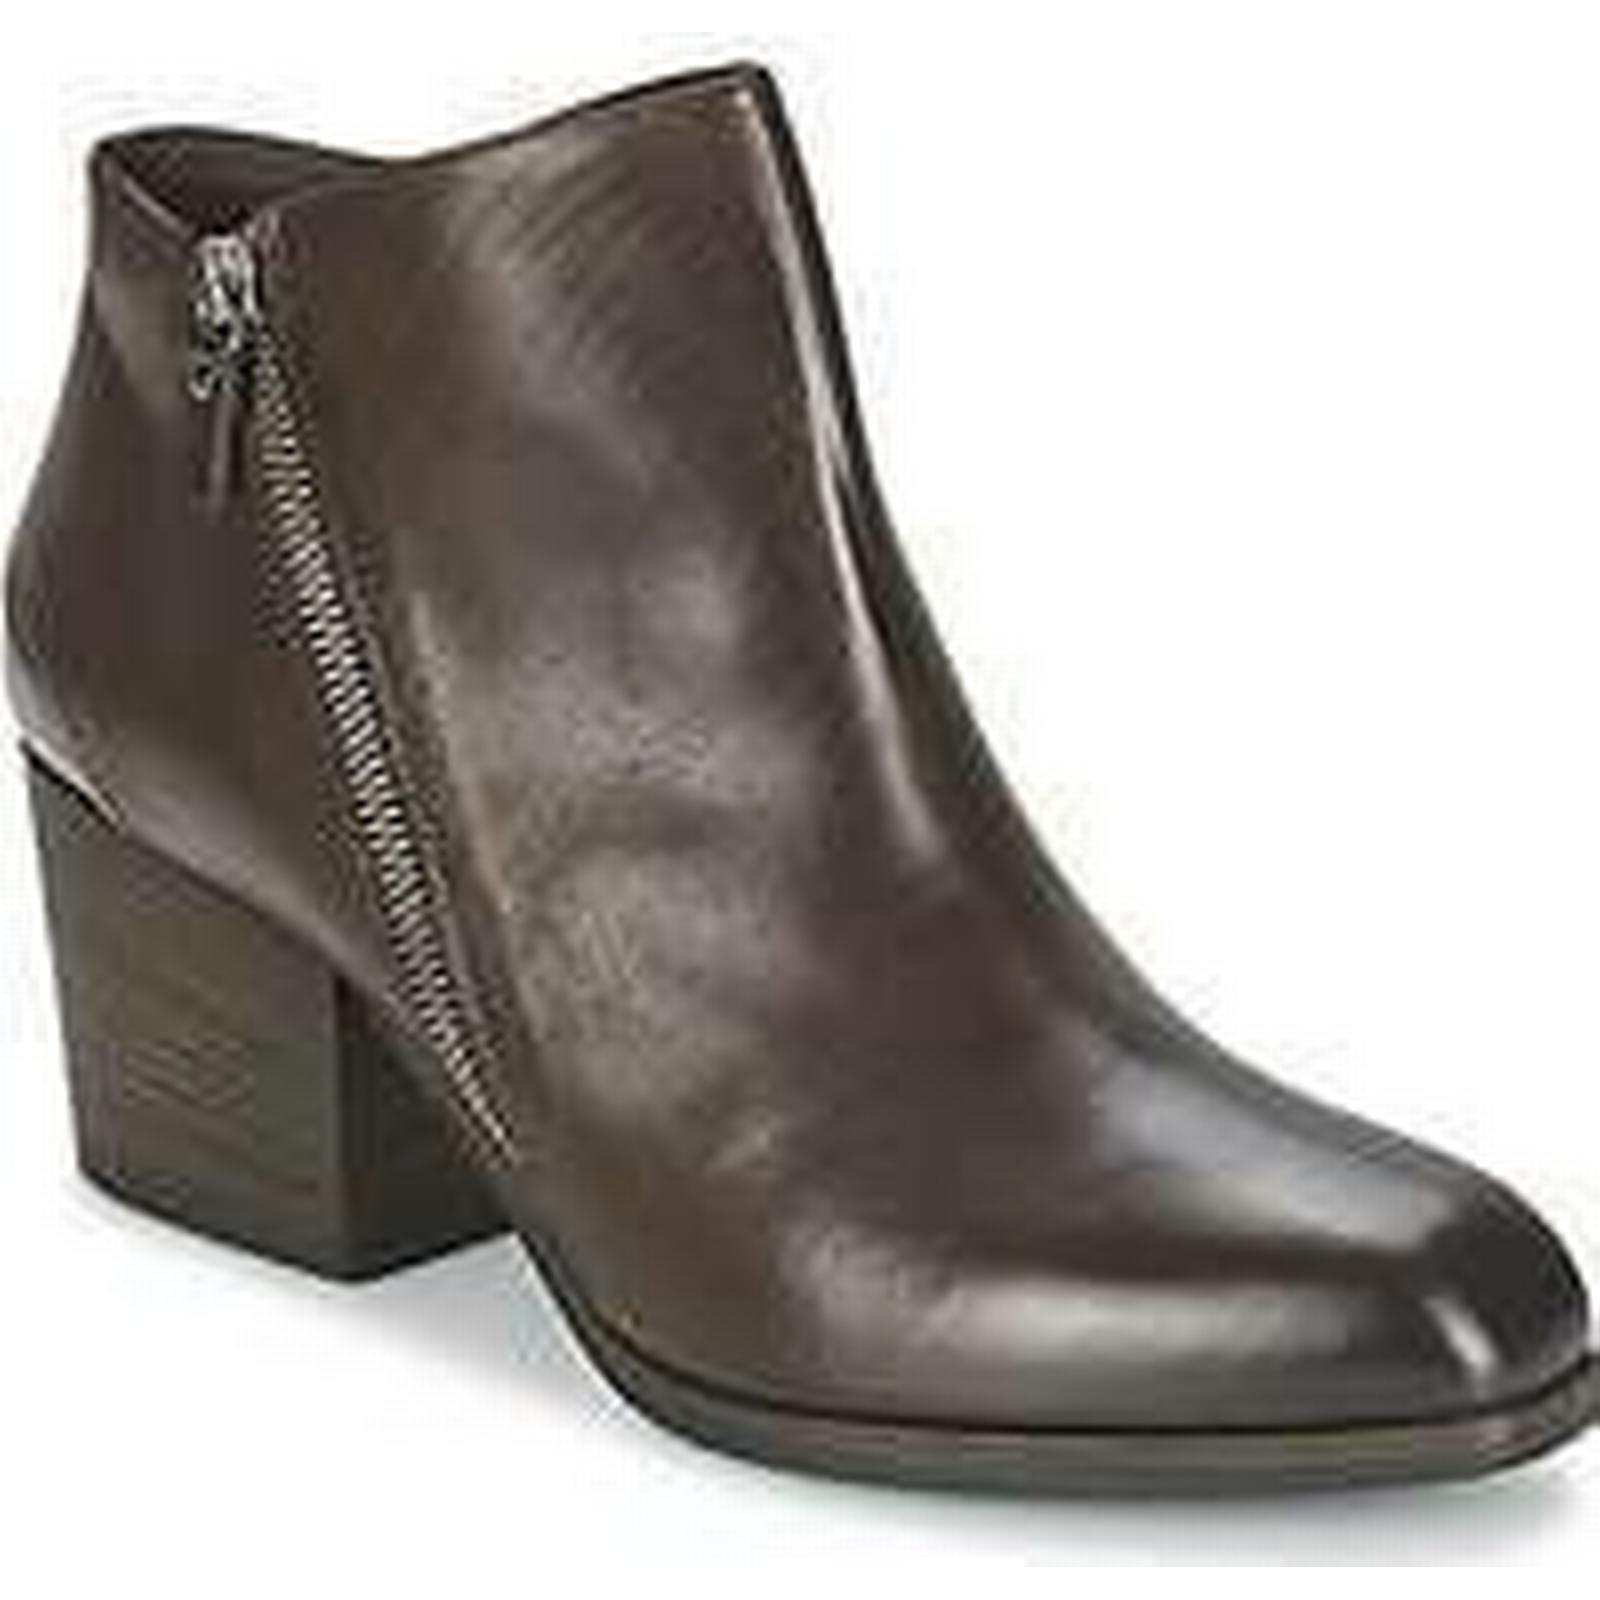 Spartoo.co.uk Vic ASSINOU Boots women's Low Boots ASSINOU in Brown 4e1ce3